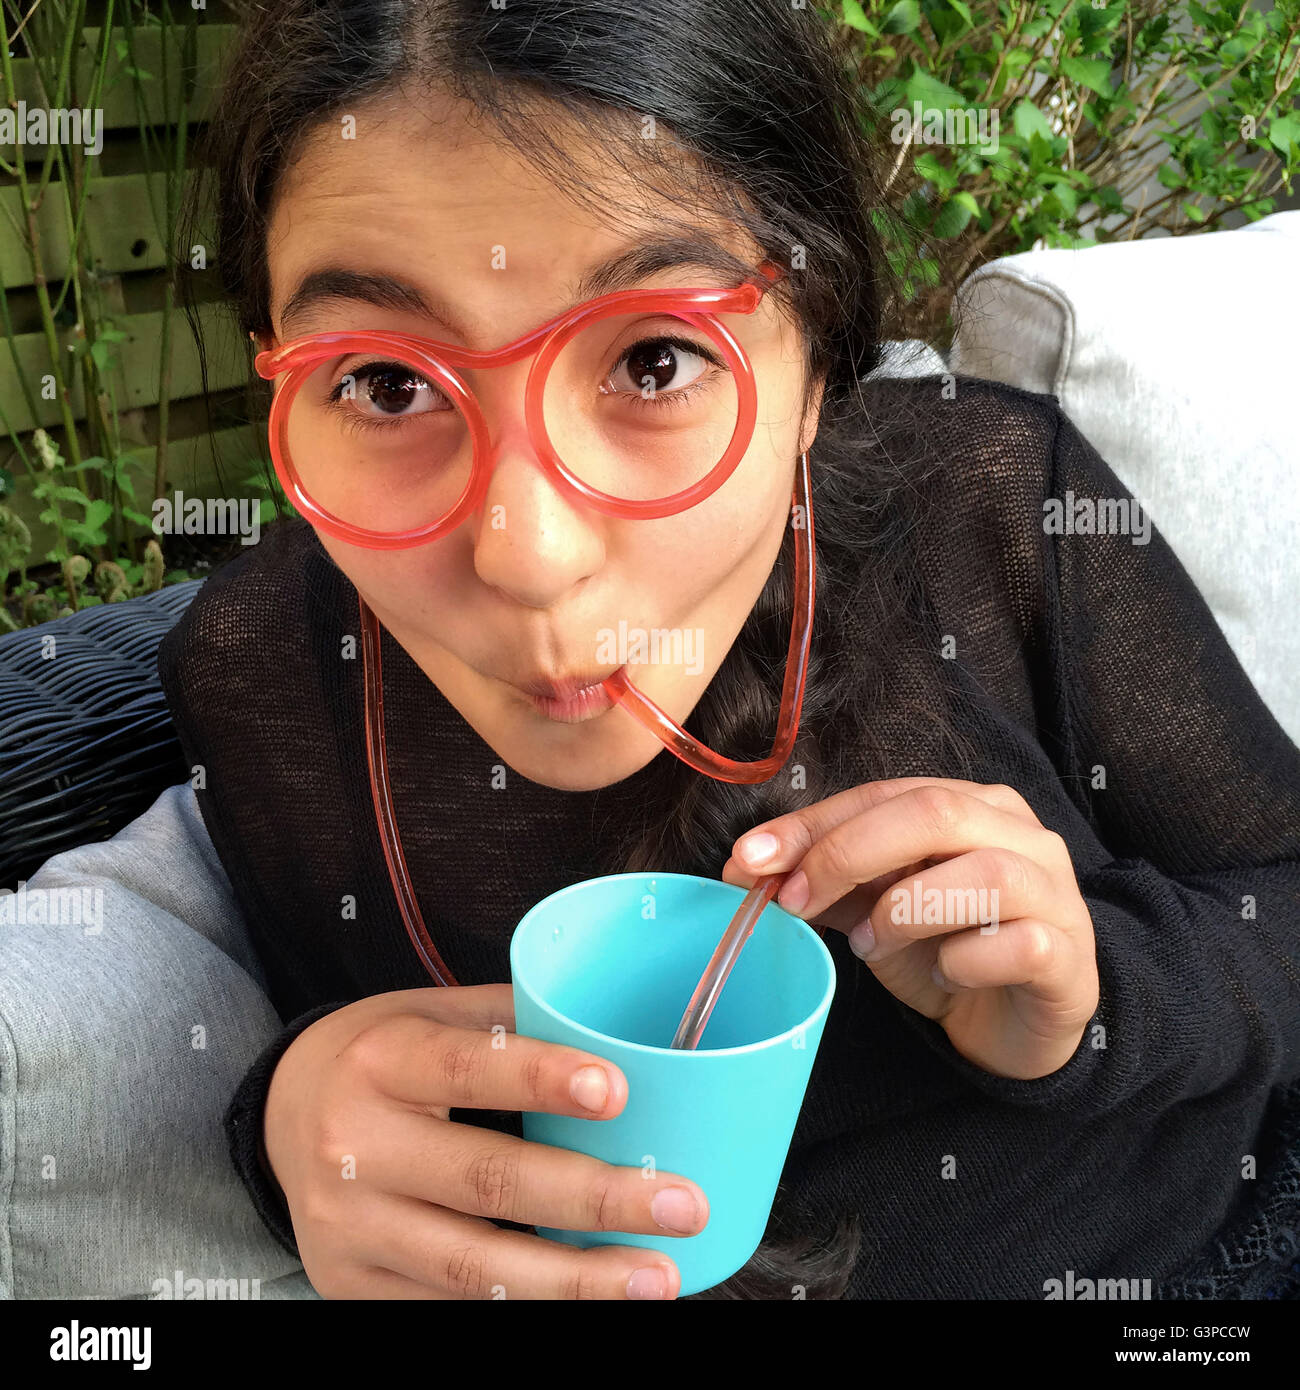 Teenage girl is drinking lemonade with a funny straw in the shape of glasses - Stock Image